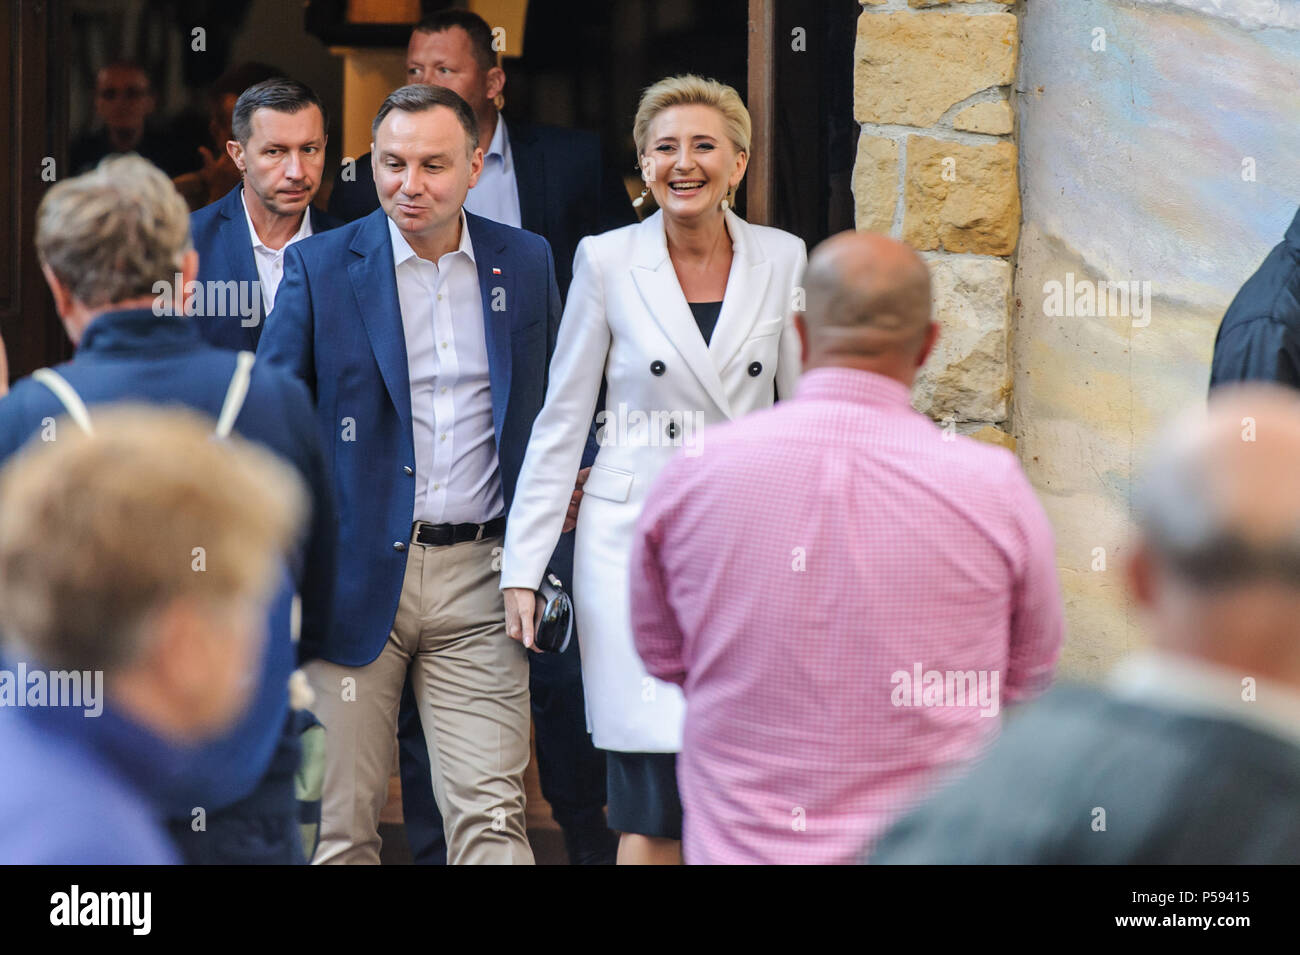 Jurata poland 06232018 the andrzej duda president of poland jurata poland 06232018 the andrzej duda president of poland and his wife greet people after leaving the church m4hsunfo